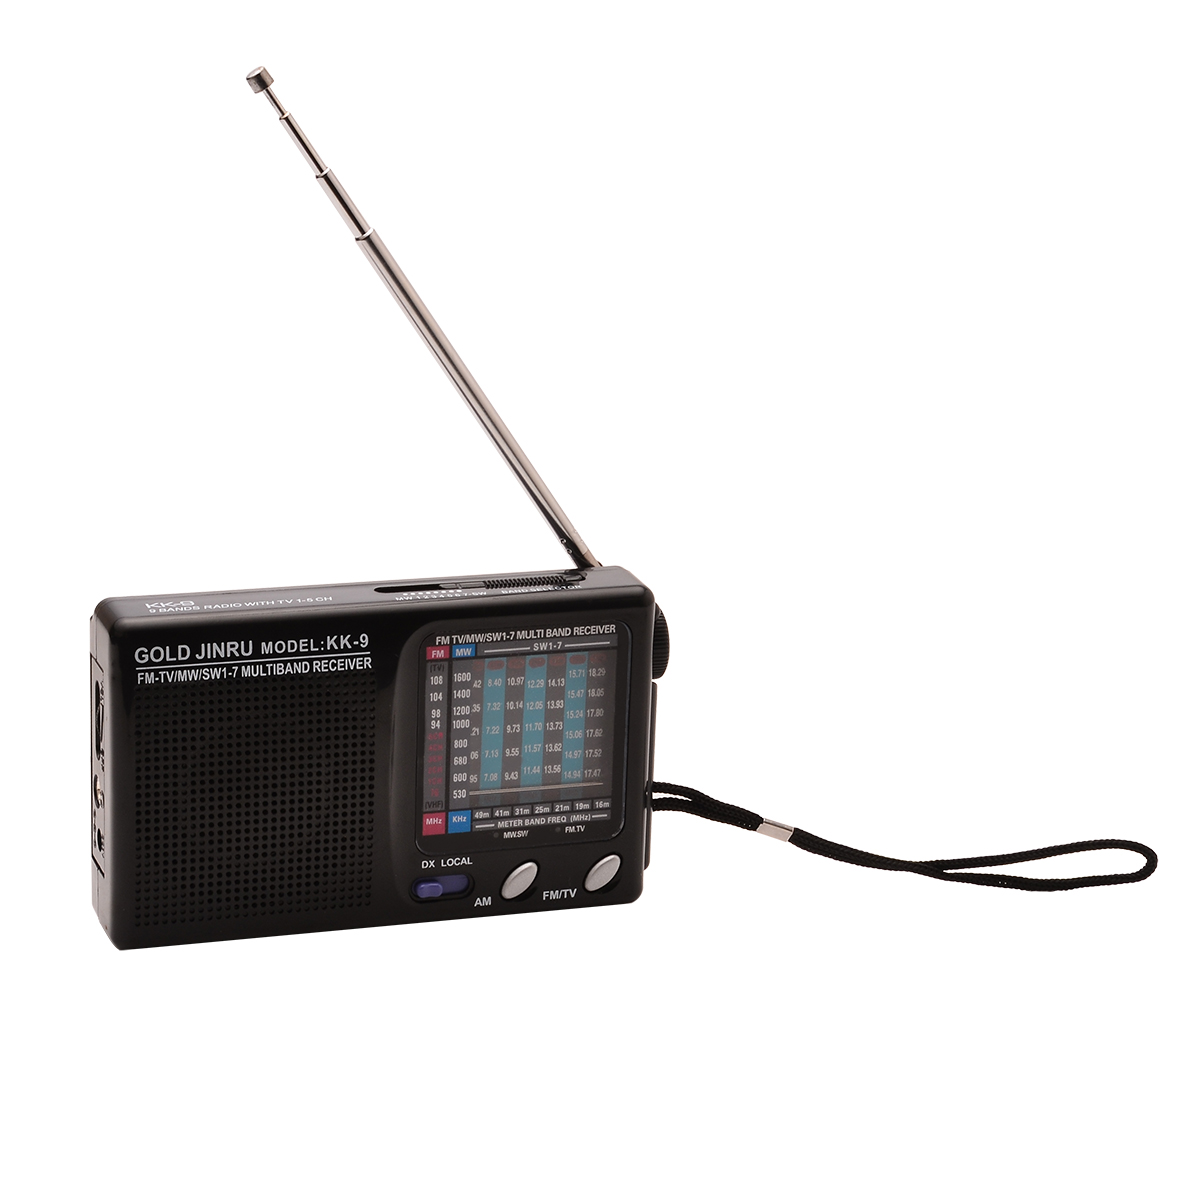 New Am Fm Radio Mini Protable Digital World Receiver With 80 To 135 Mhz Vhf Circuit Board Design Mayitr 1pc Full Band Dsp Stereo Mw Sw Portable